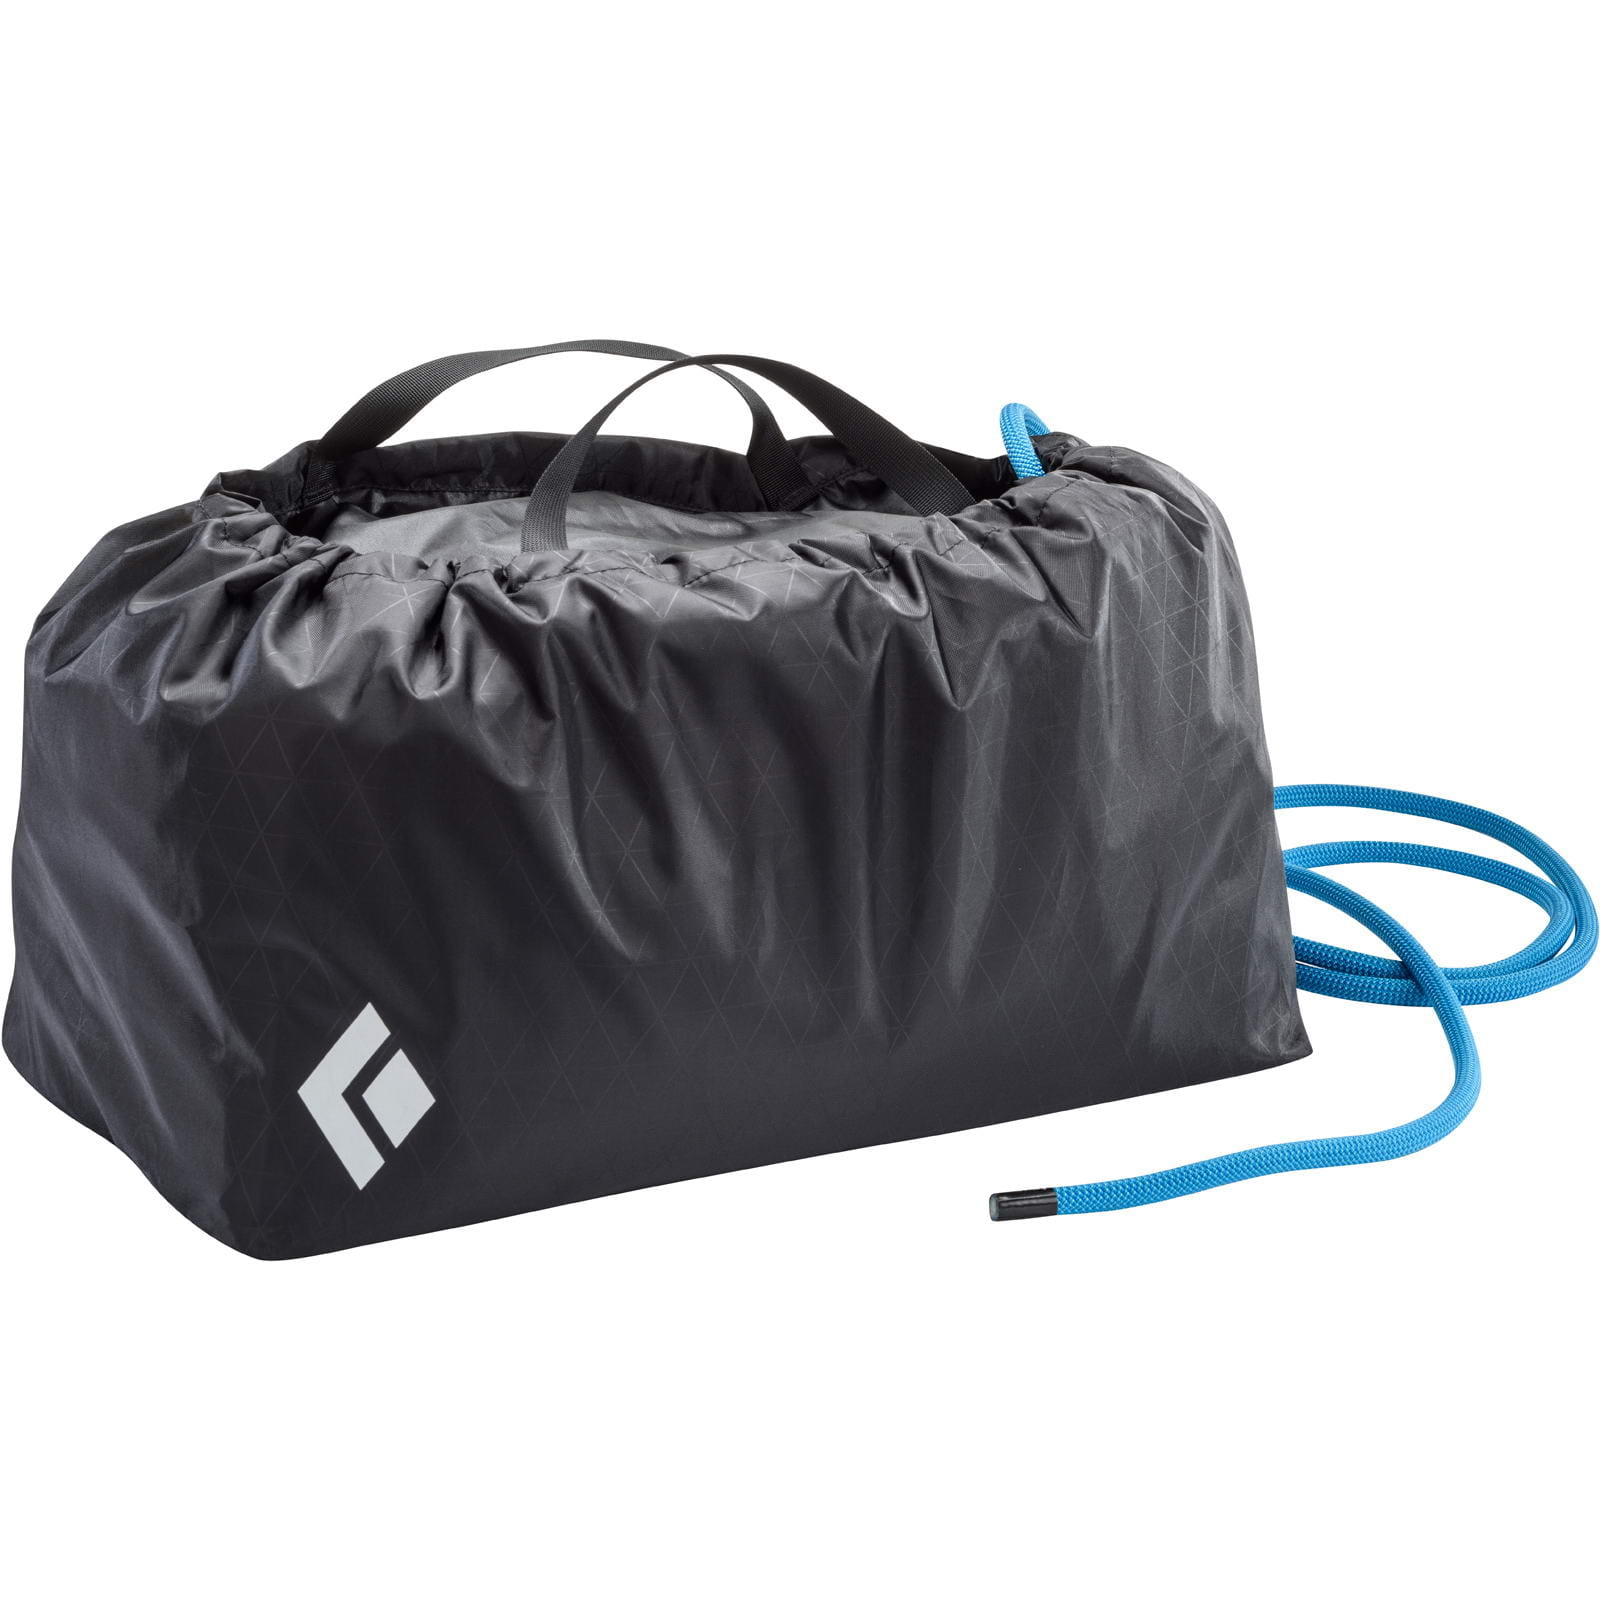 Black Diamond Full Rope Bag - Seiltasche black - Bild 1